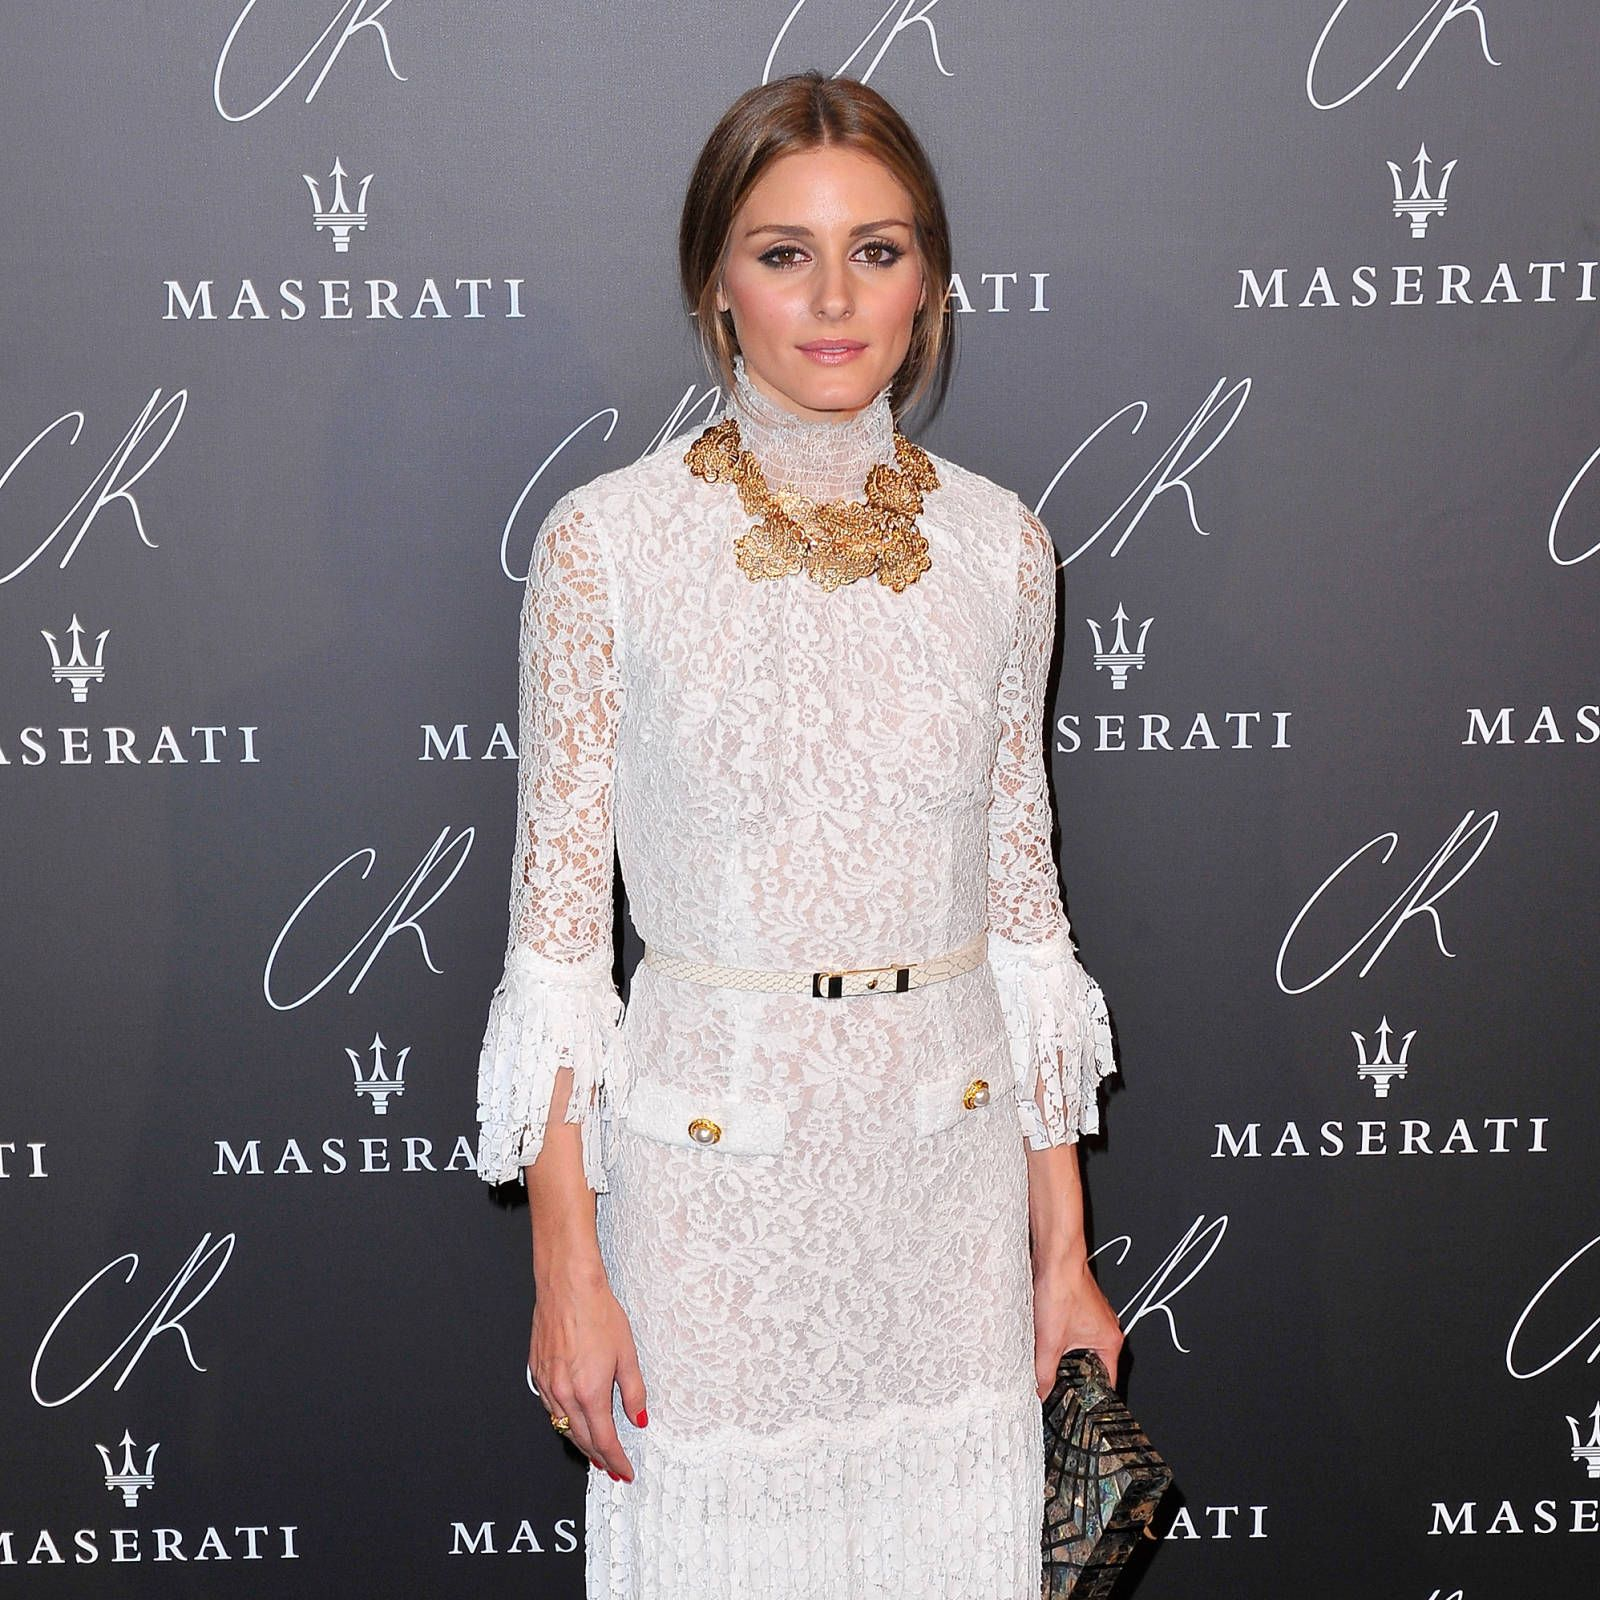 Olivia Palermo at the CR Fashion Book launch